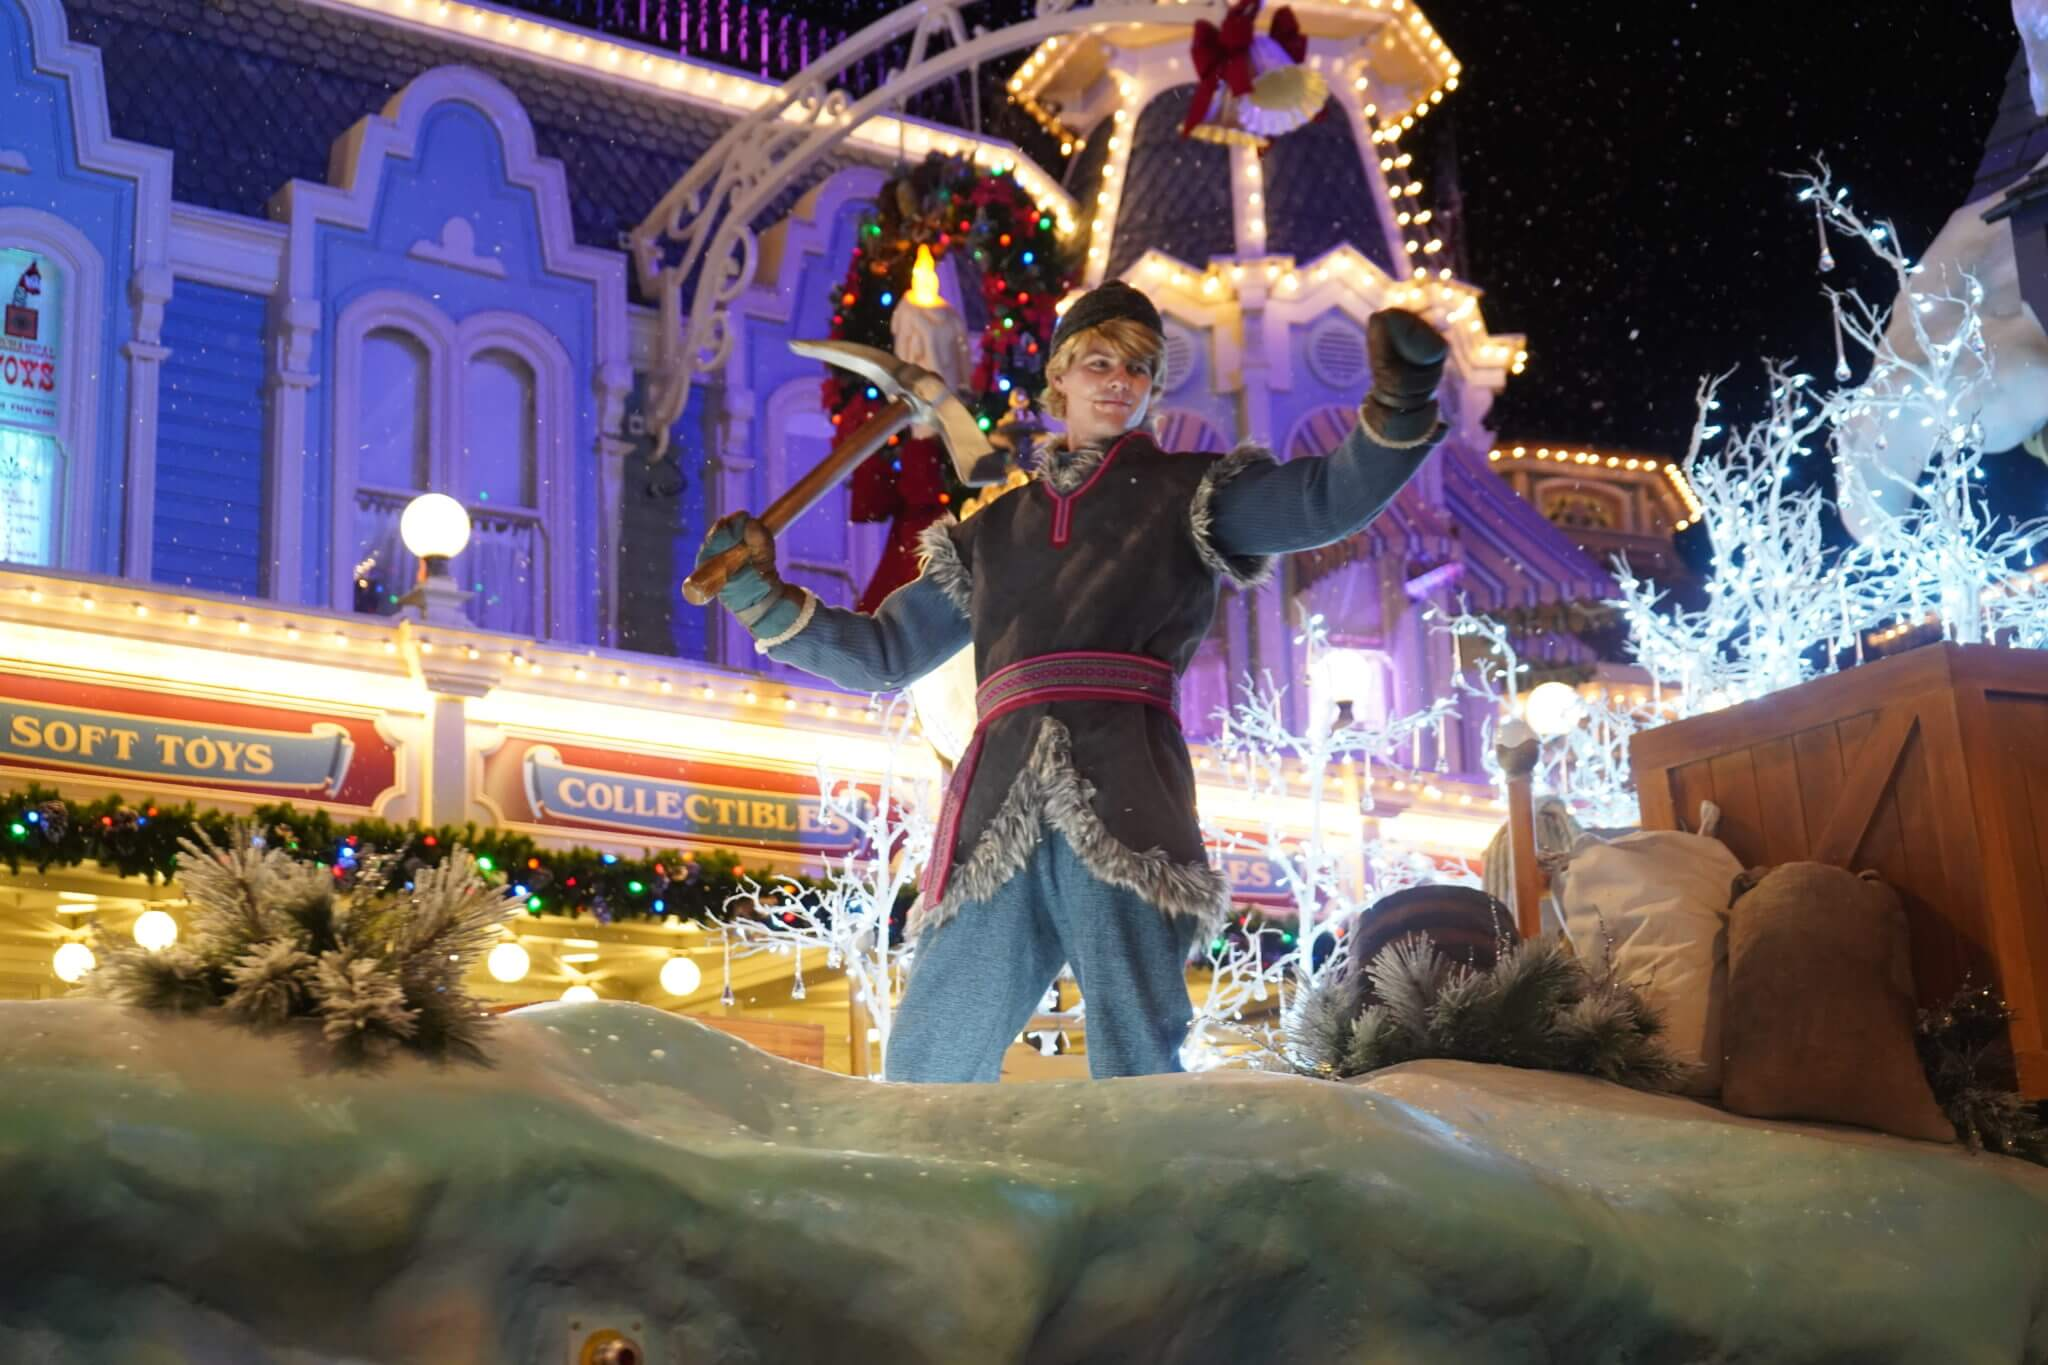 Kristoff from Frozen in Once Upon a Christmastime Parade on Main Street USA in Disney World